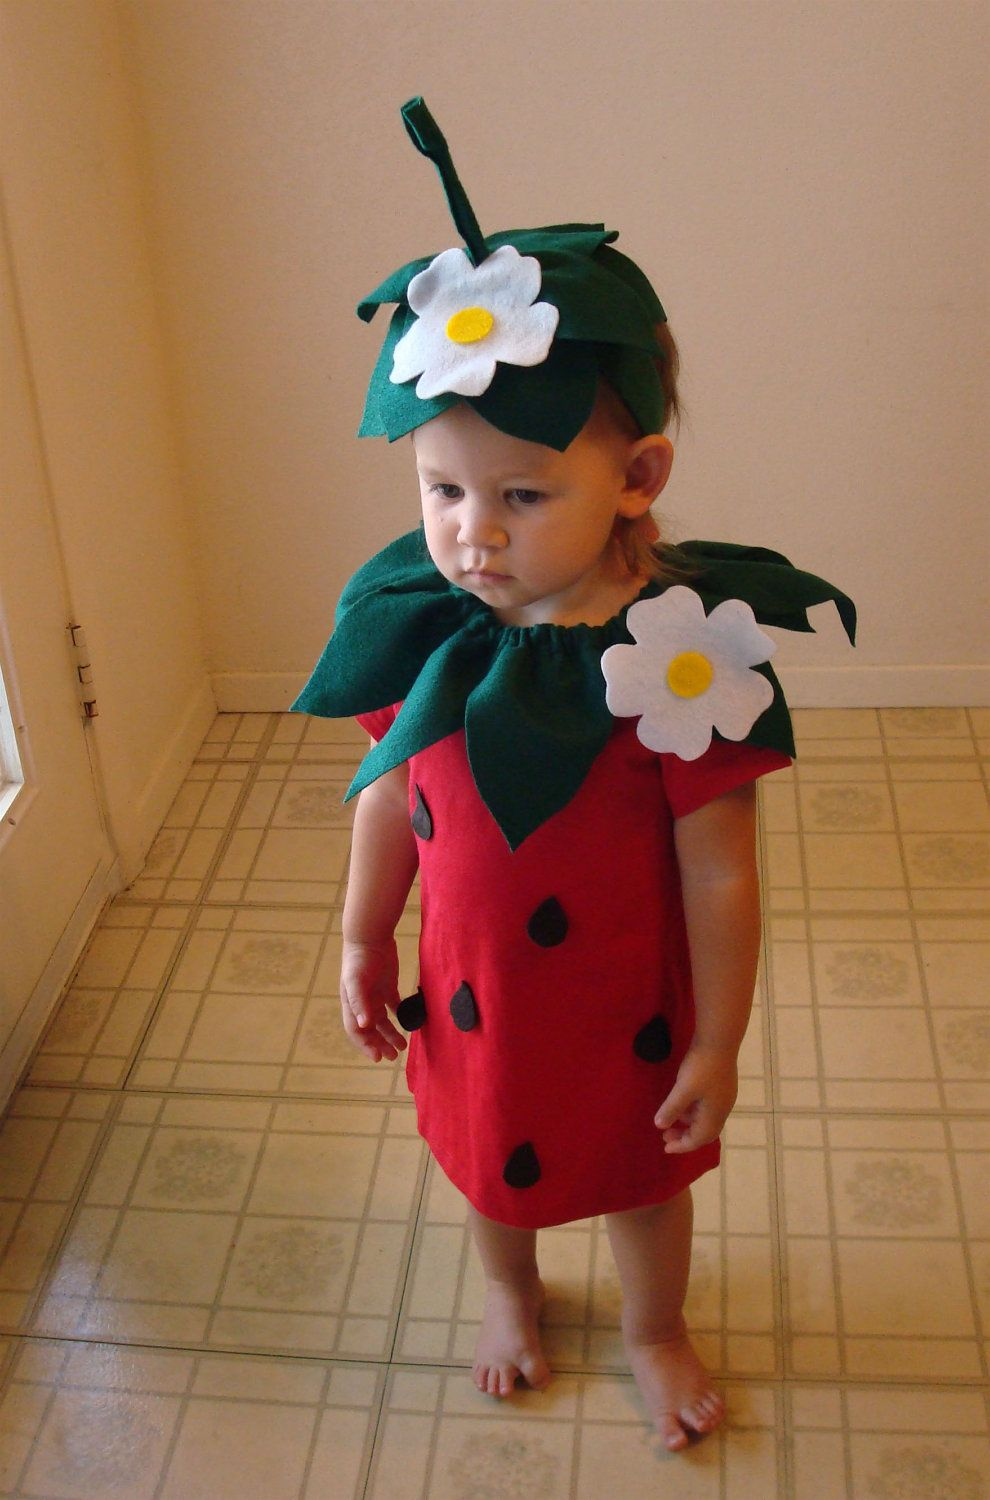 Baby diy strawberry do it yourself baby costume halloween costume baby diy strawberry do it yourself baby costume halloween costume strawberry costume solutioingenieria Choice Image